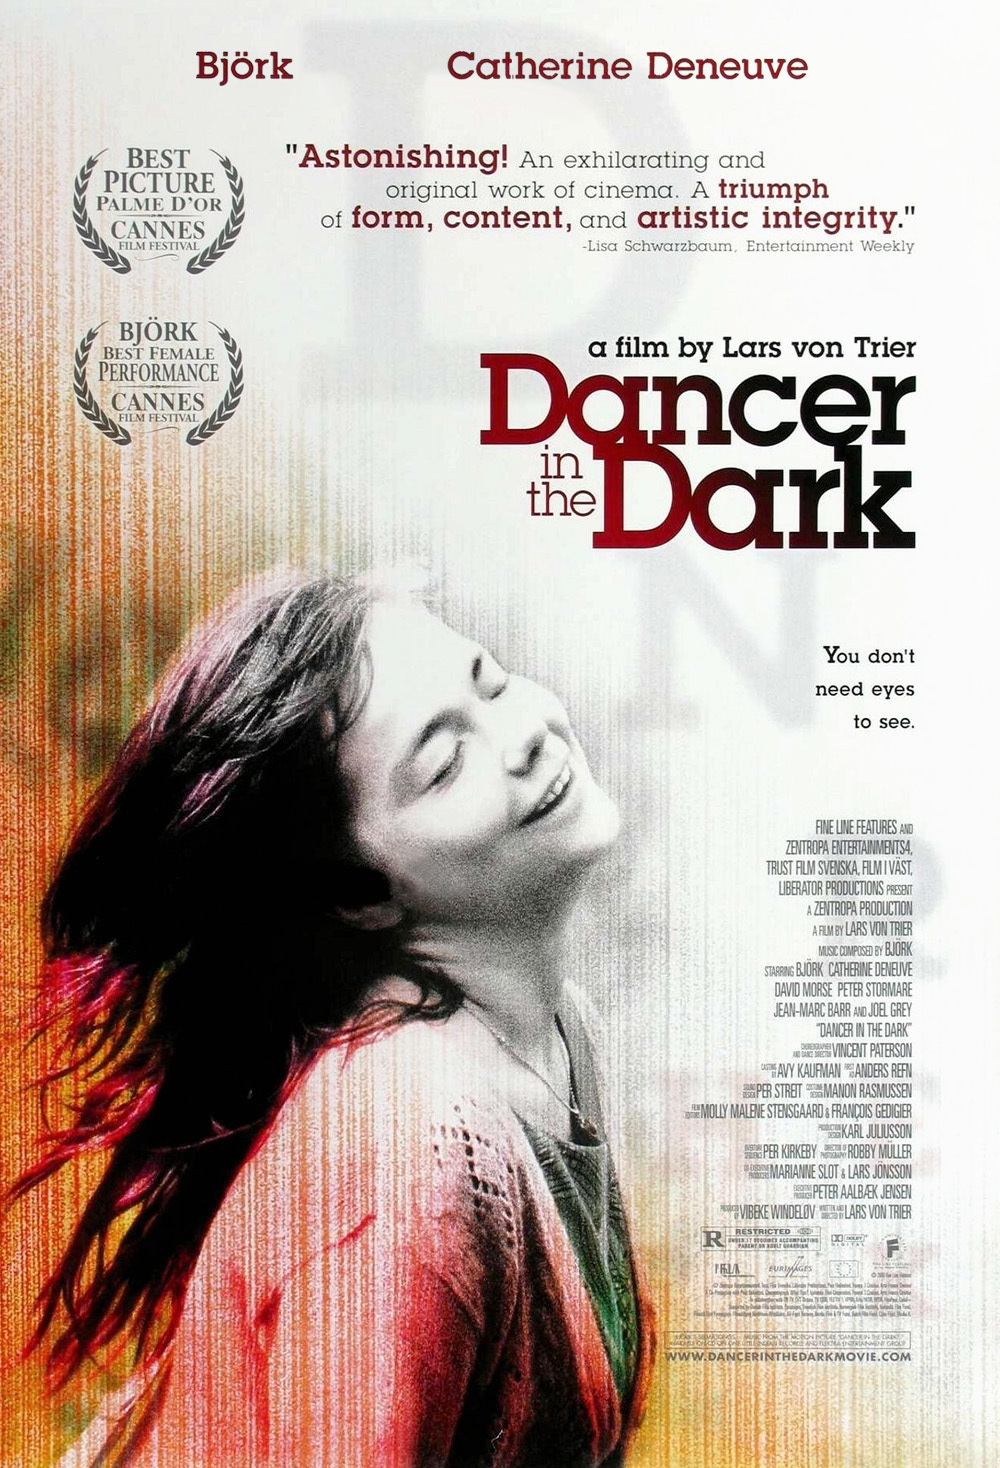 Le Migliori Frasi Frasi Del Film Dancer In The Dark